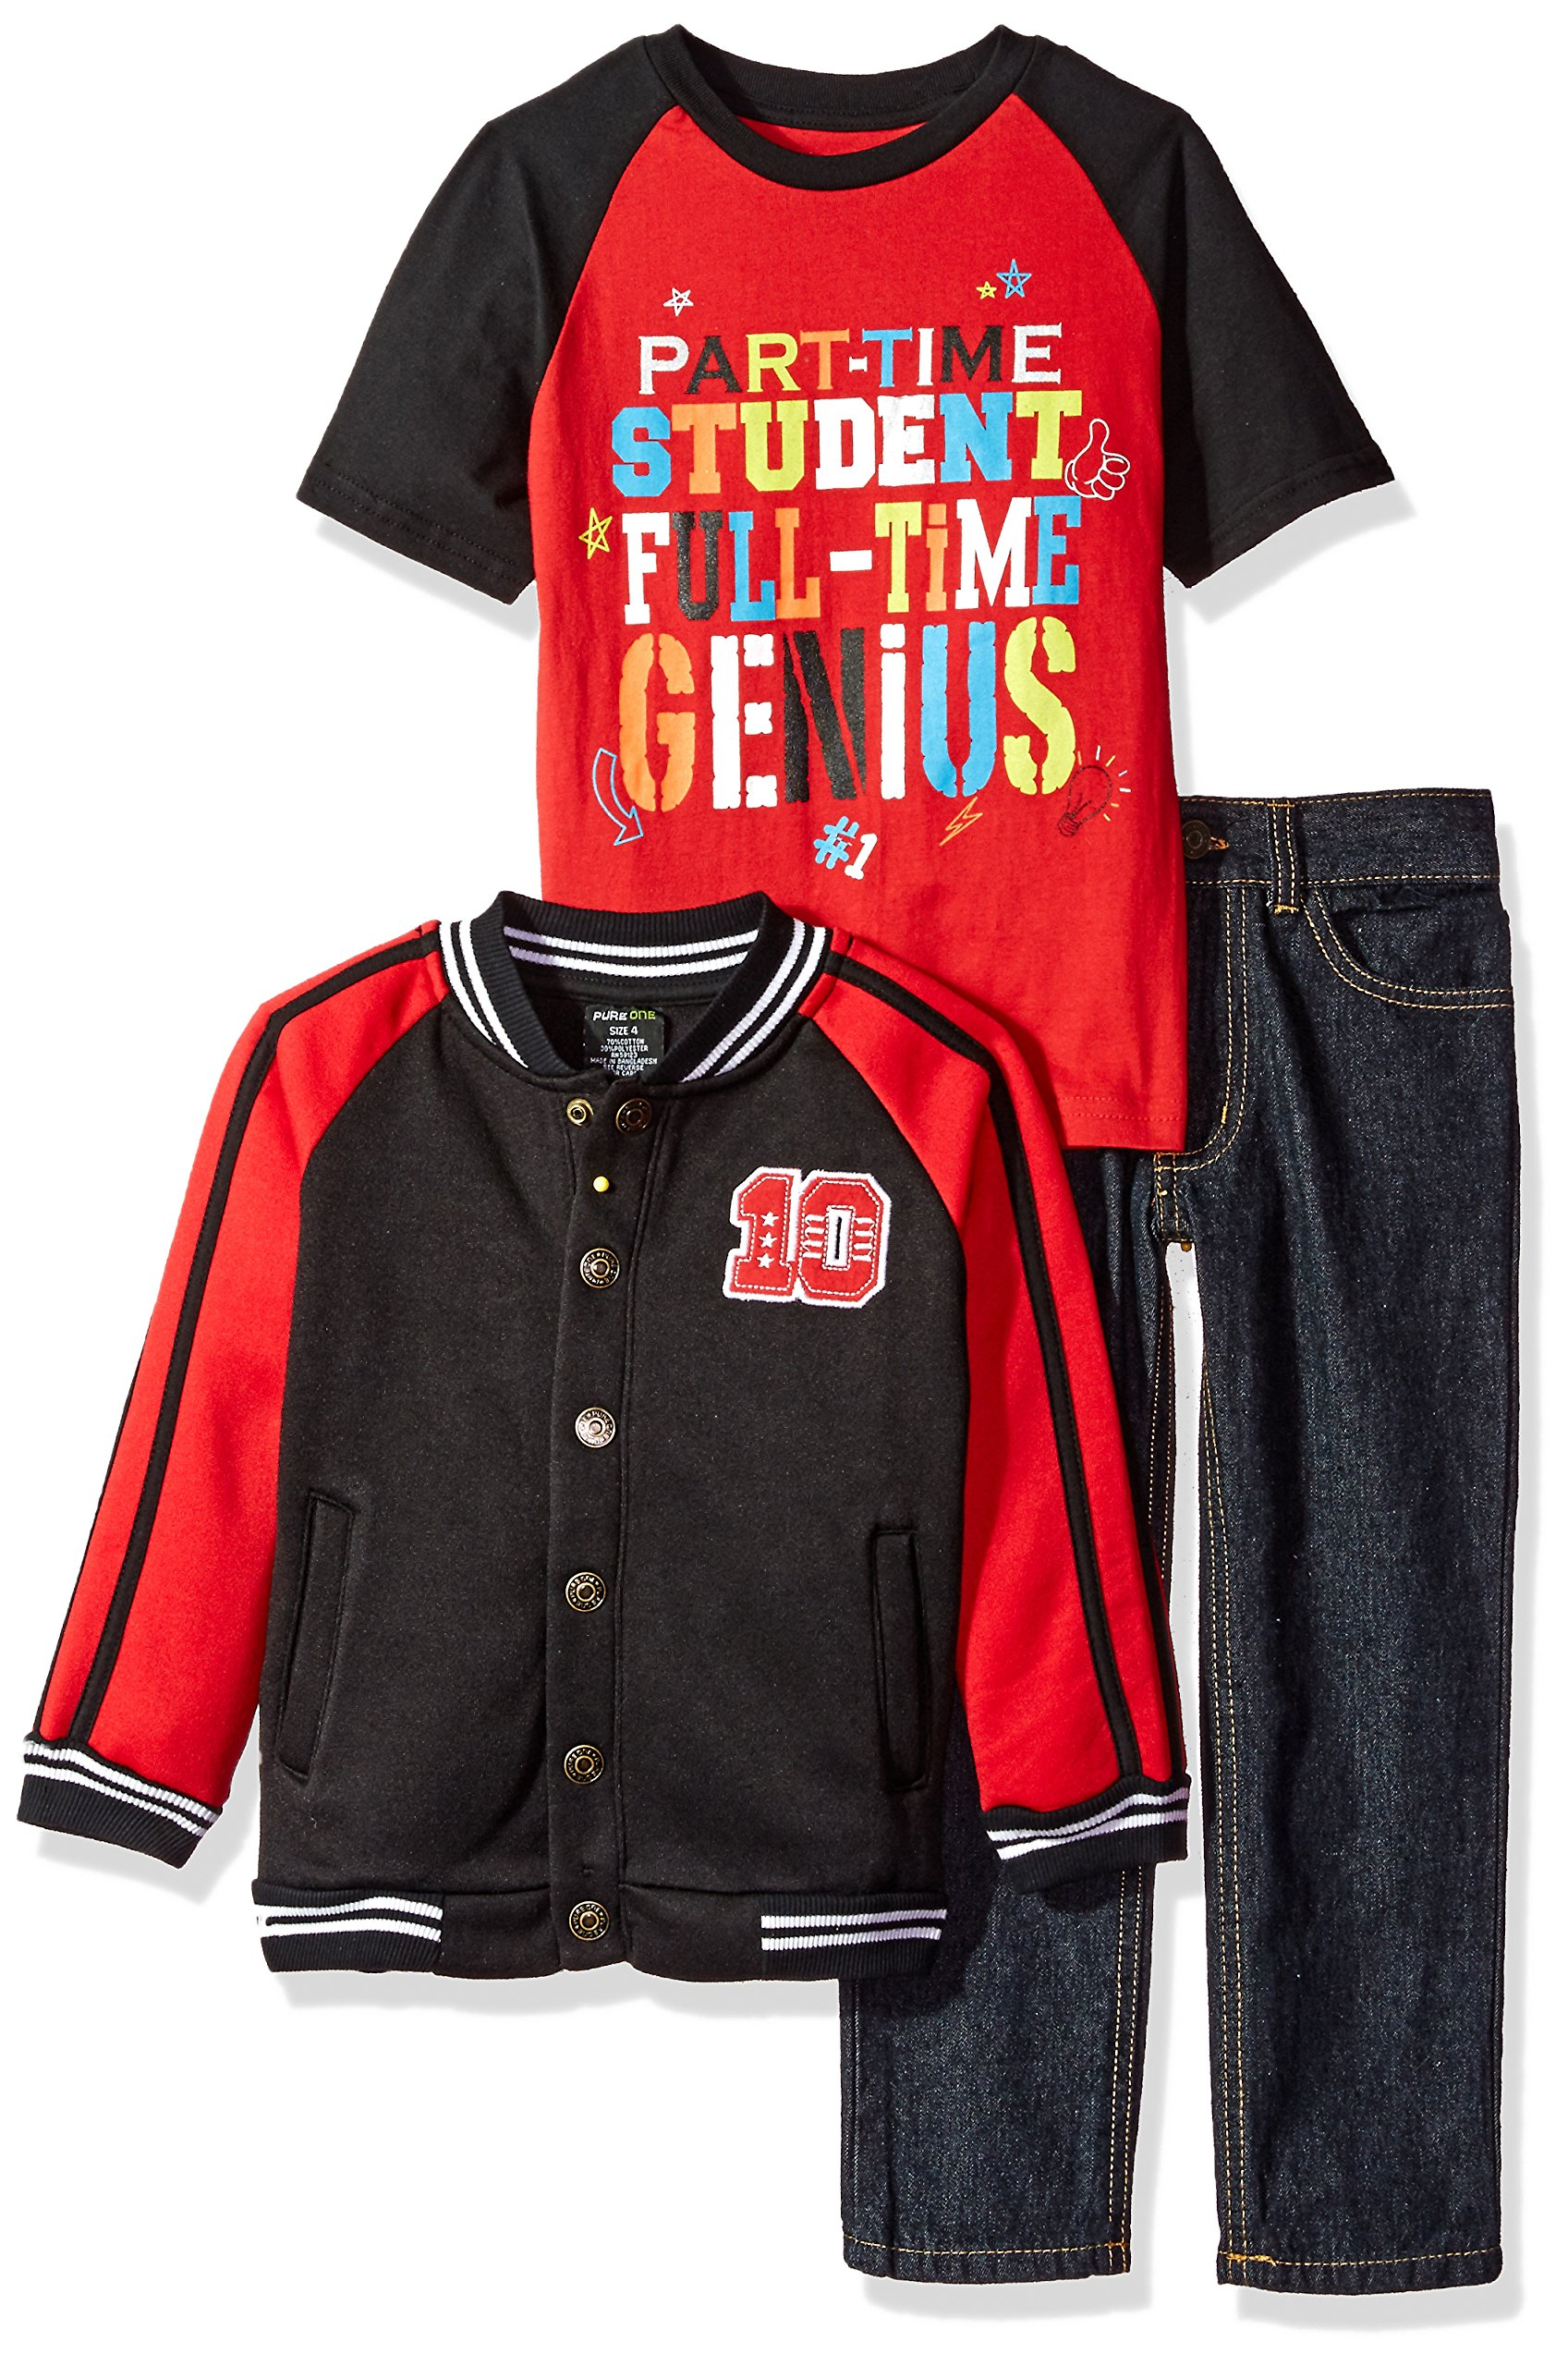 American Hawk Little Boys' Jacket, T-Shirt and Pant Set (More Styles Available), Black-SL83, 5/6 by American Hawk